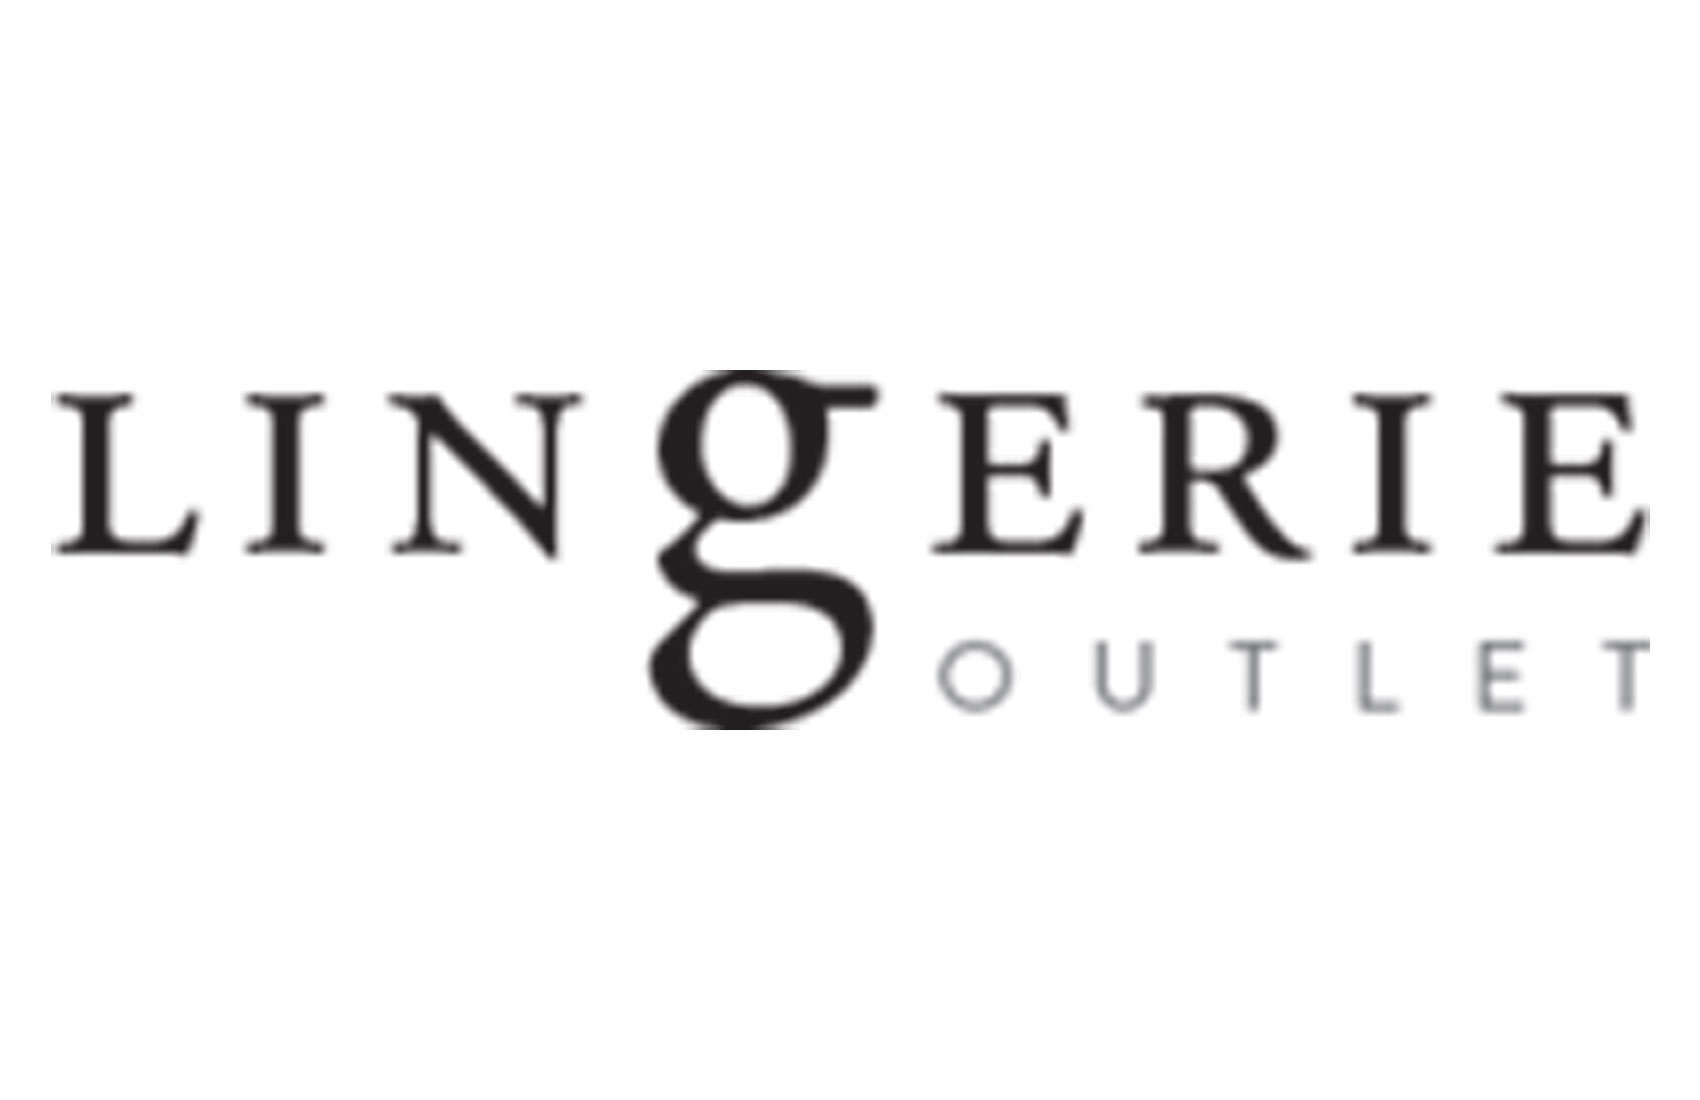 Lingerie Outlet - Driespoort Shopping